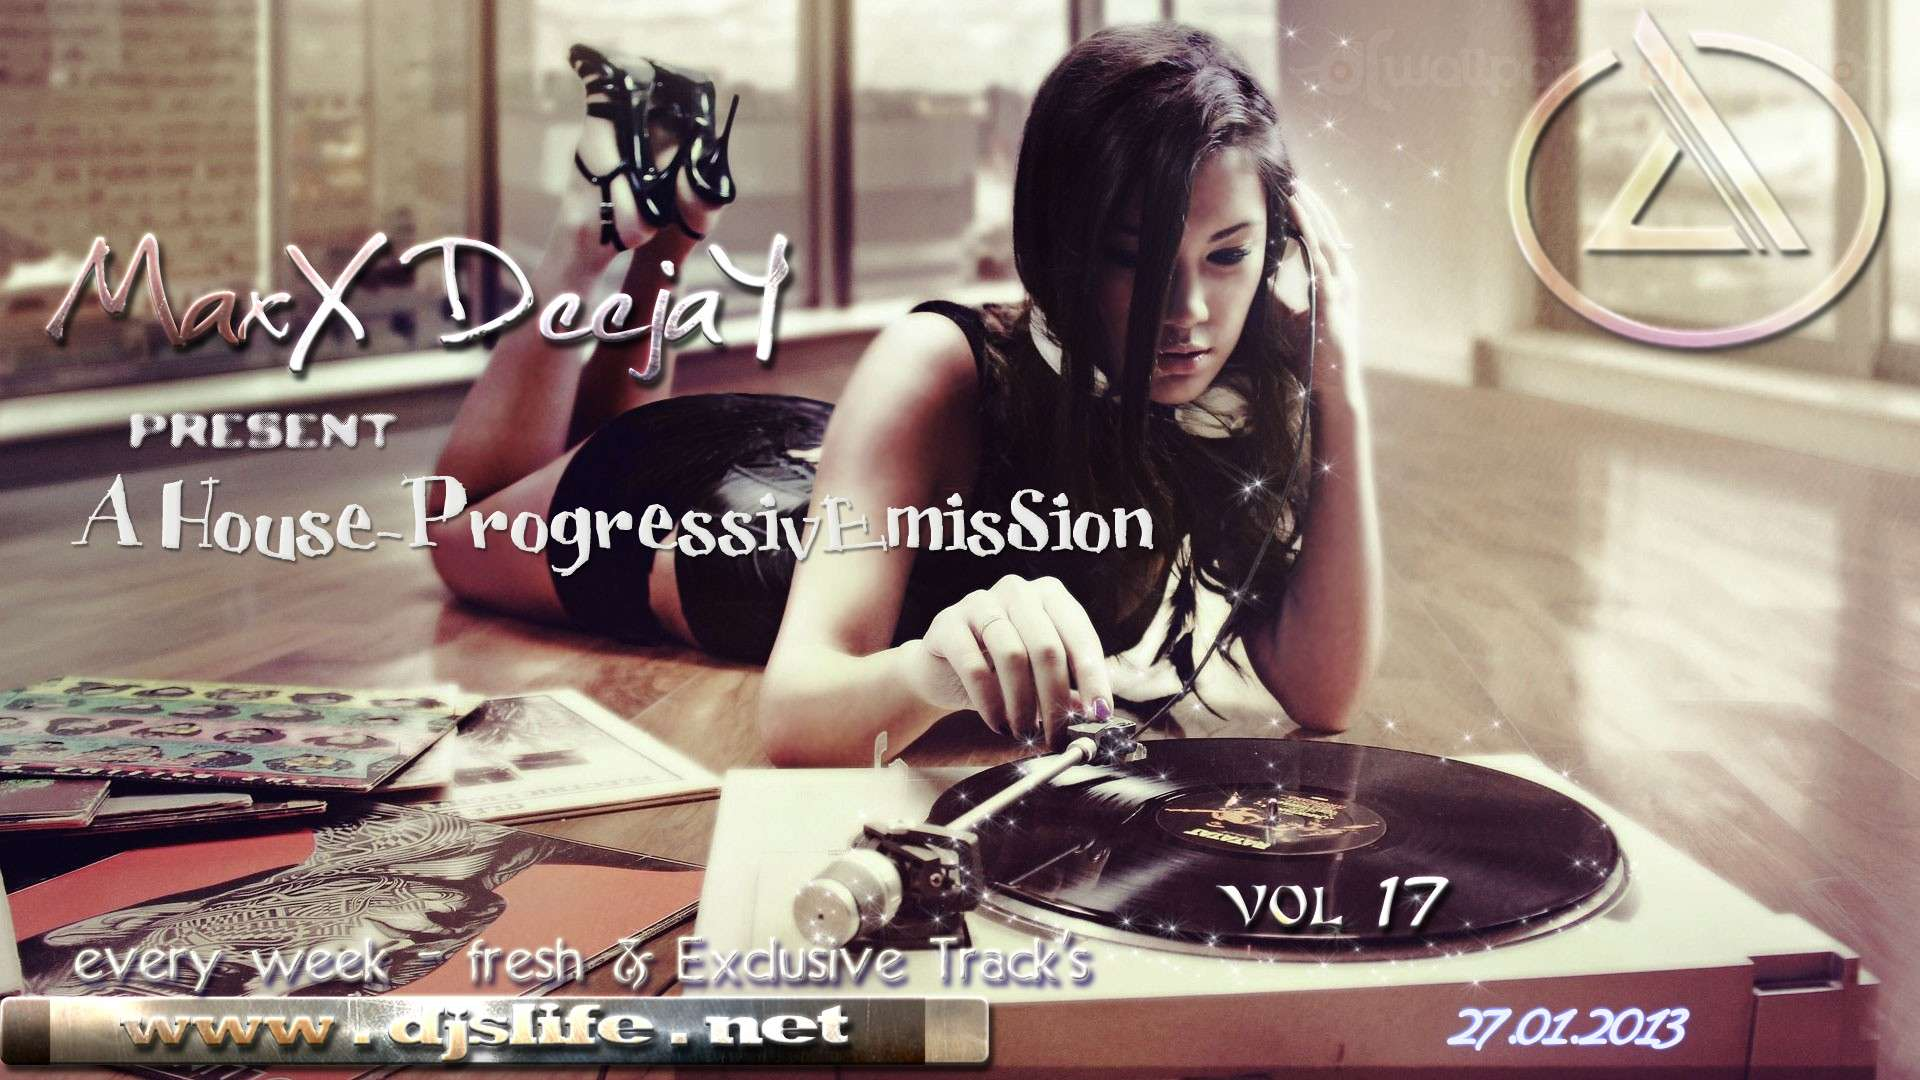 MaxX DeejaY - A House-ProgressivEmisSion vol.17 [27.01.2013]